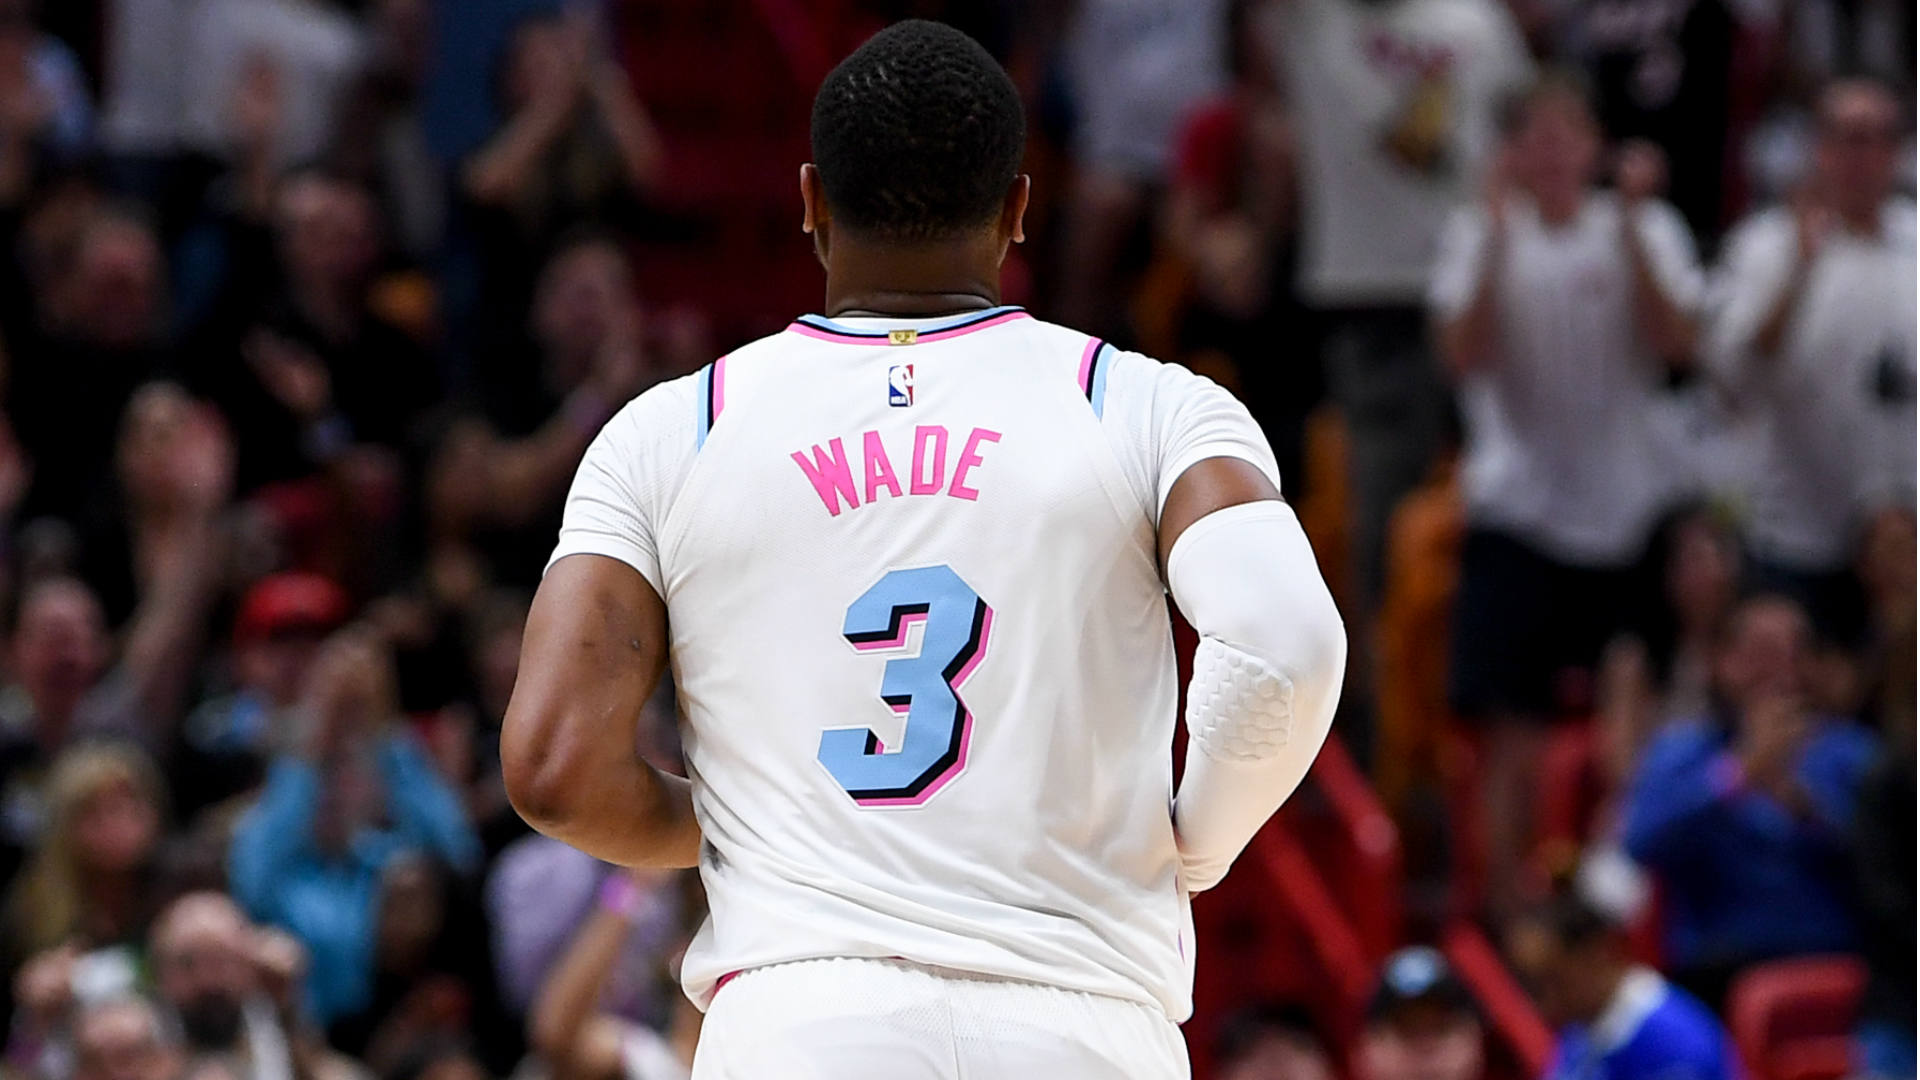 Heat Players React to Dwyane Wade Coming Back to Miami